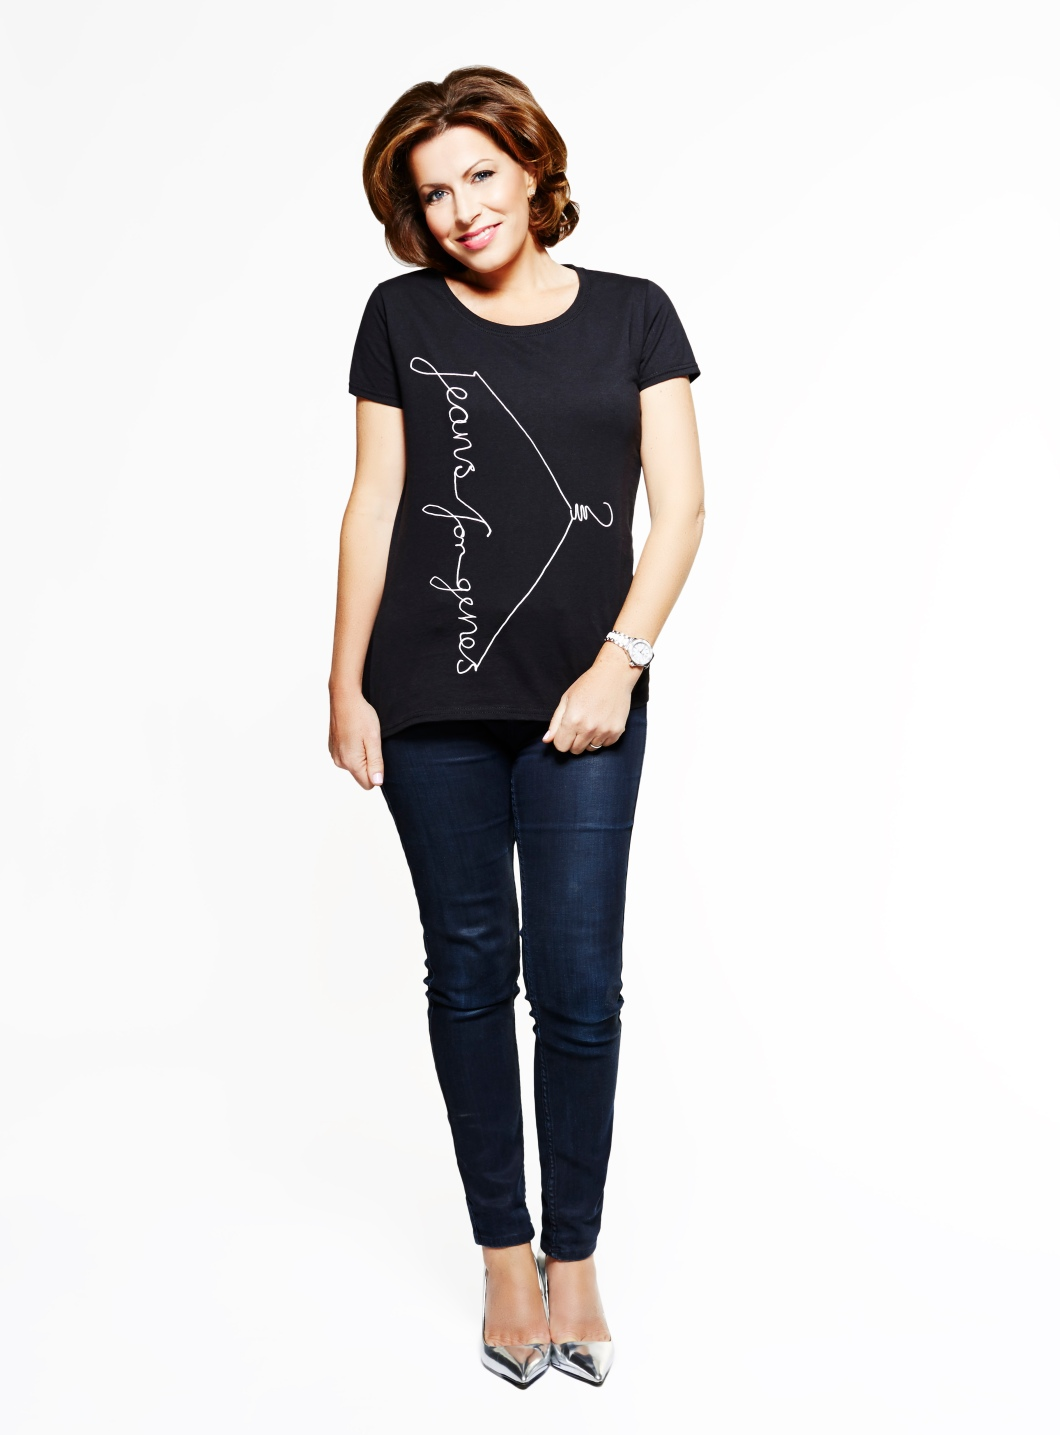 Natasha Kaplinsky in Jeans for Genes black fashion t-shirt